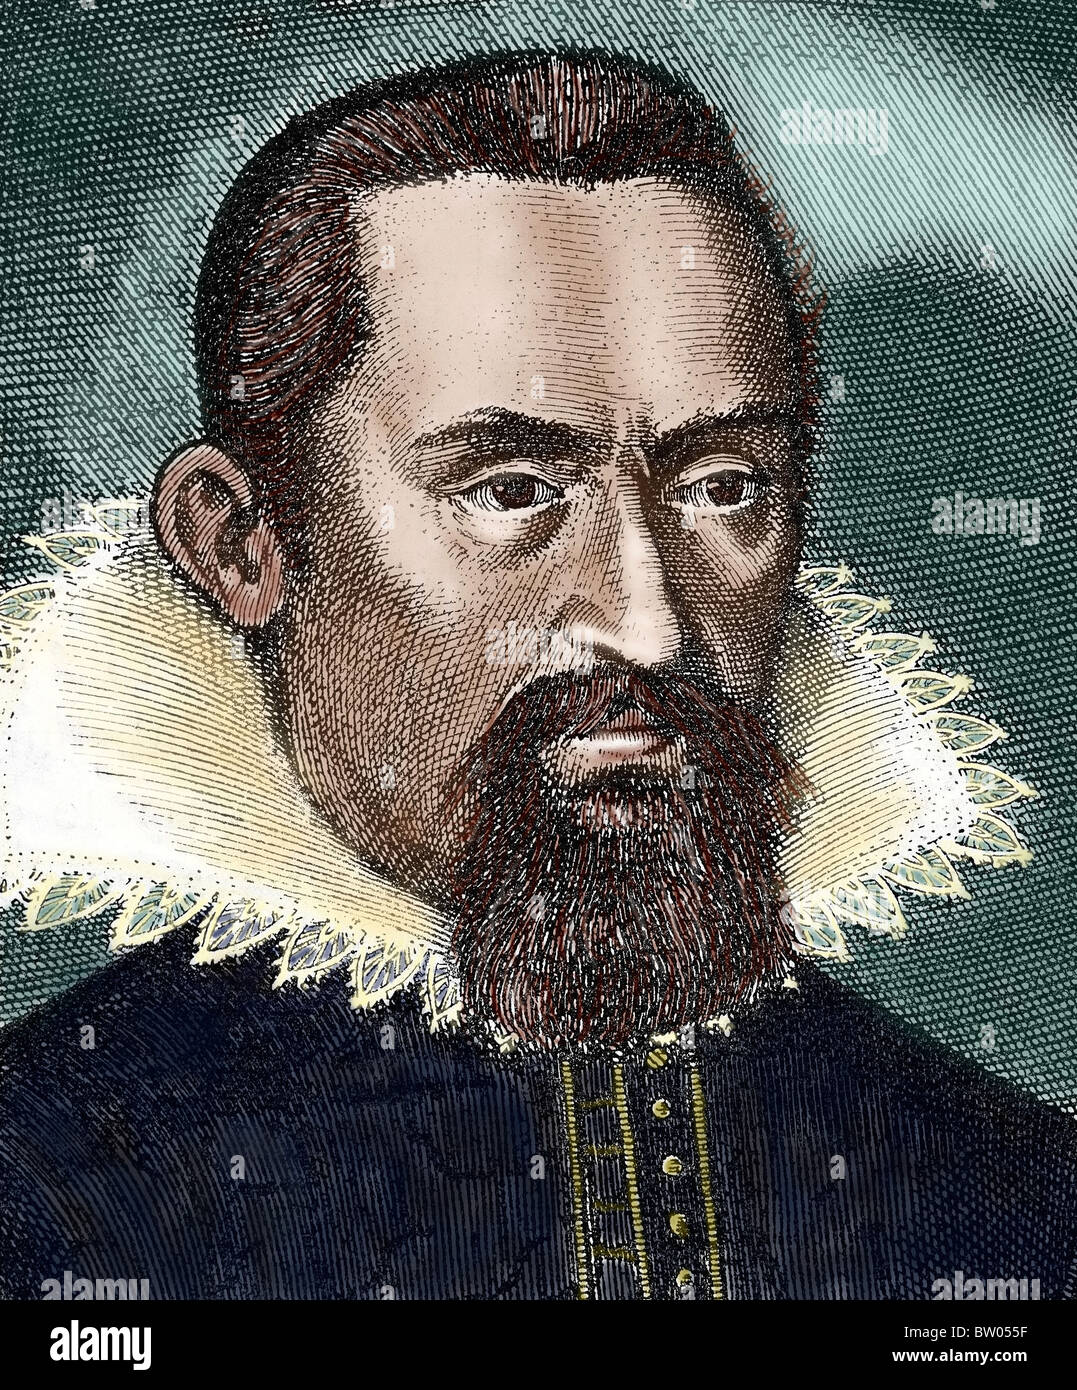 Kepler, Johannes (1571-1630) German mathematician and astronomer. Considered the founder of modern astronomy. Colored - Stock Image